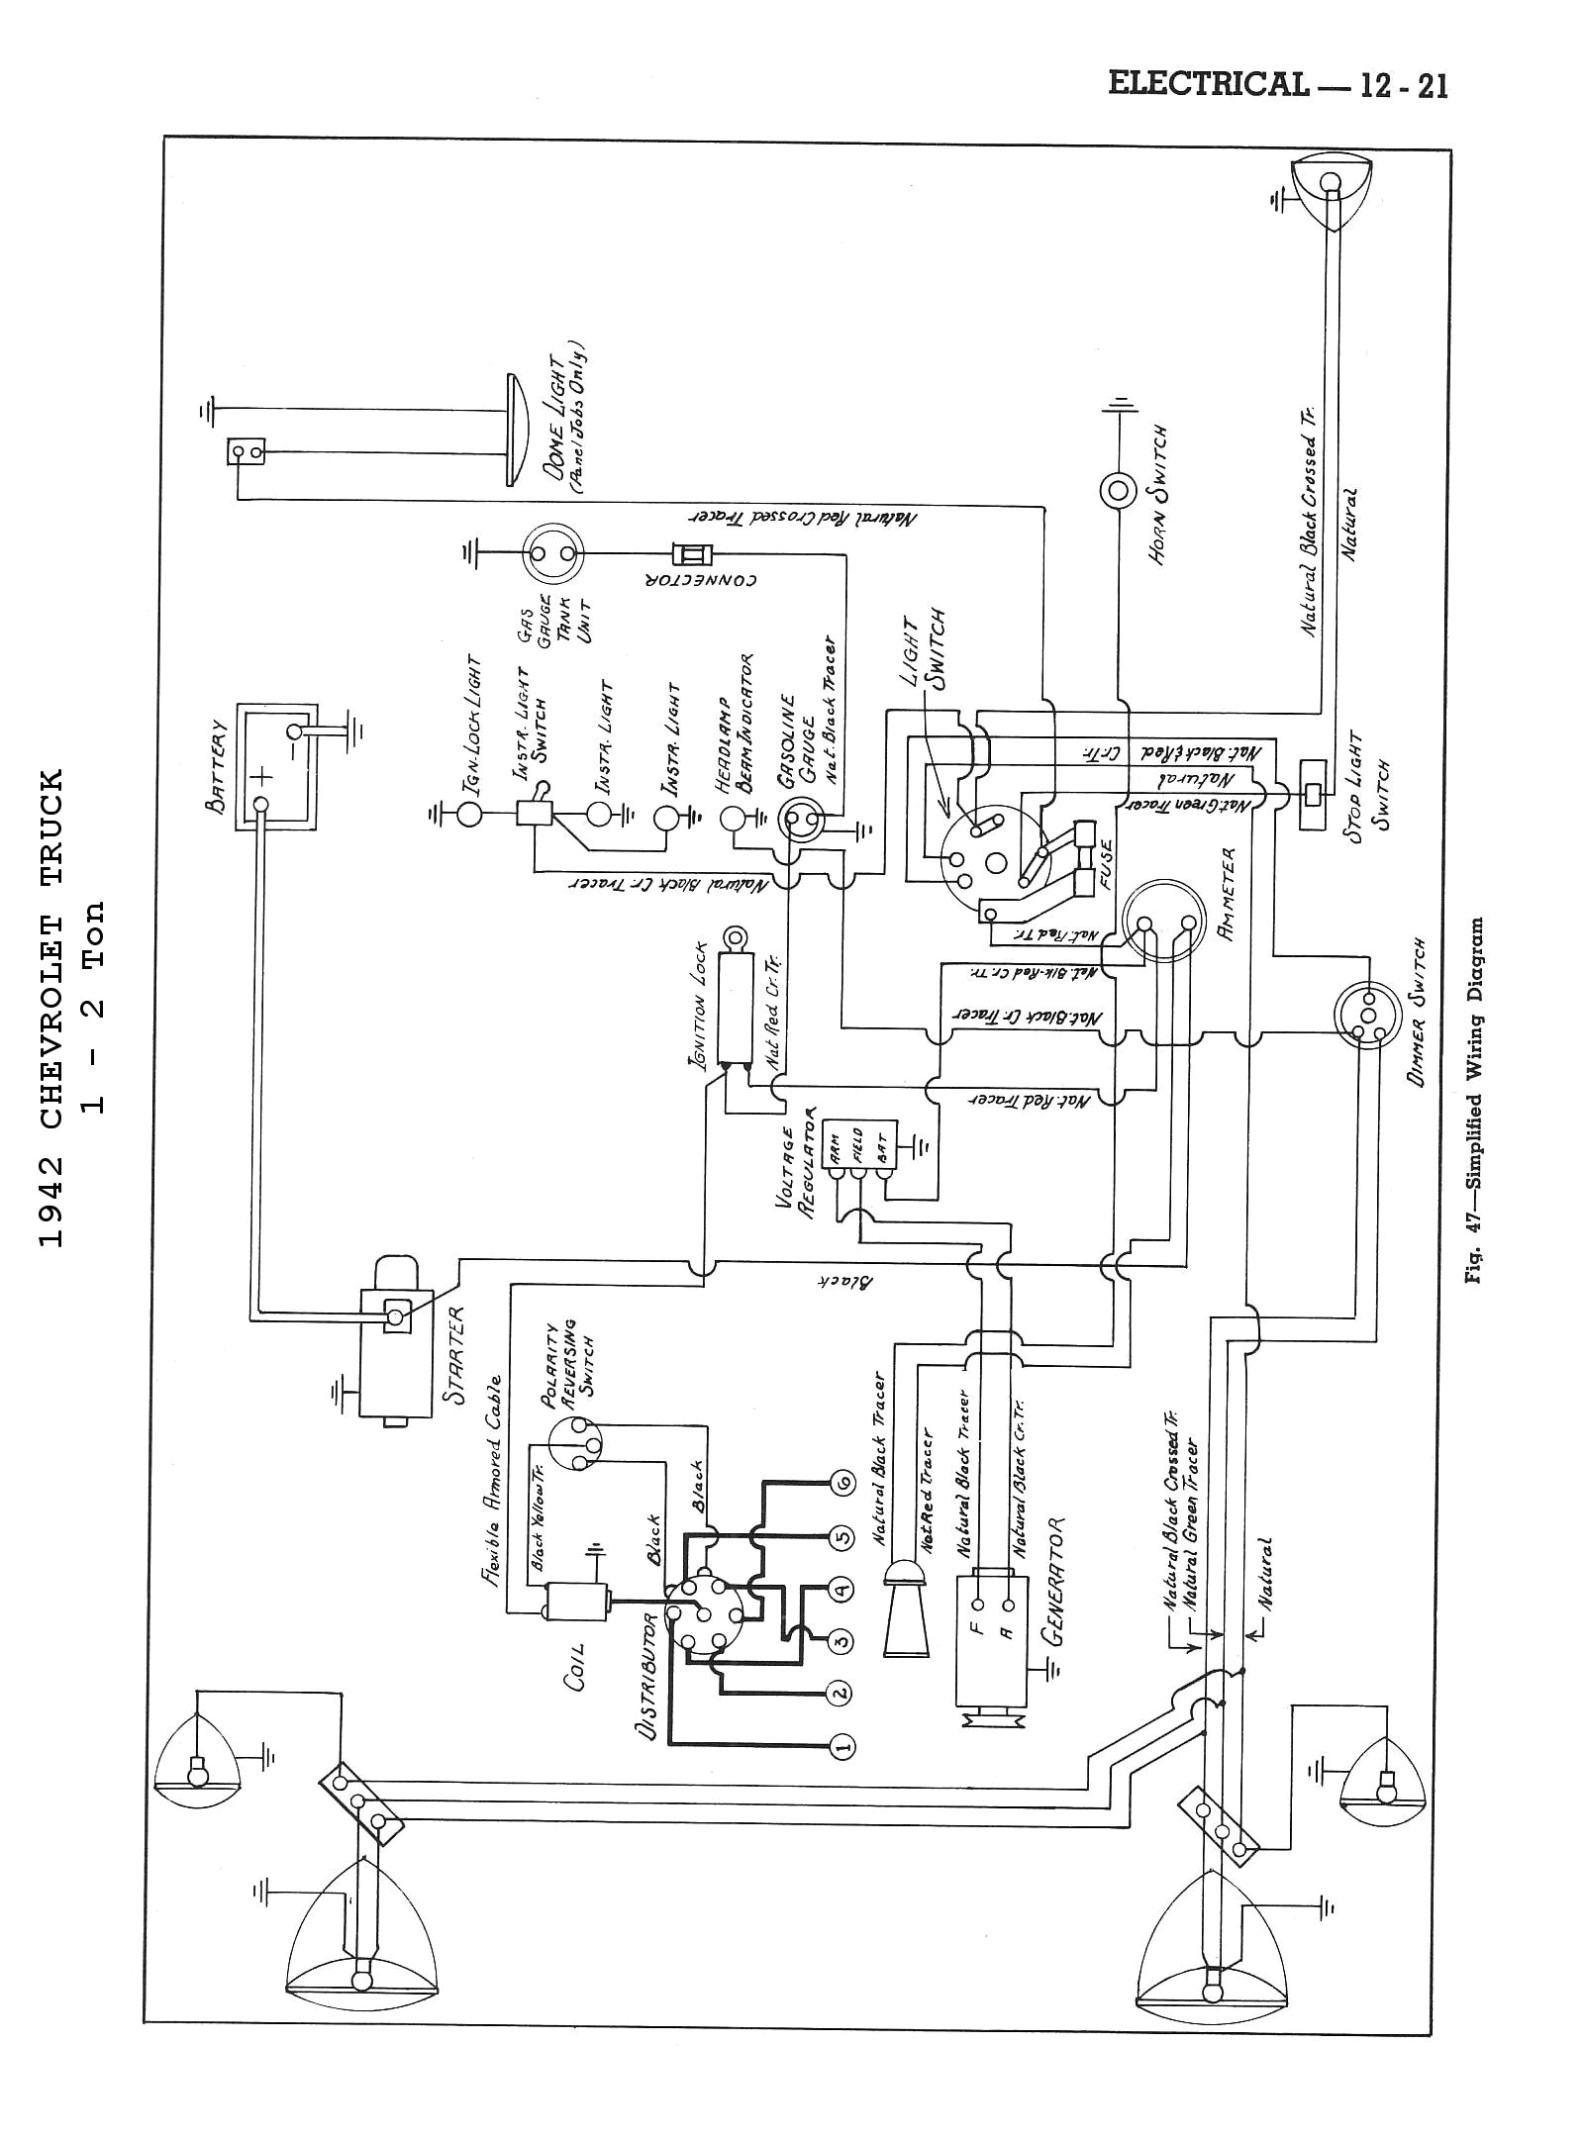 Turn Signal Wiring Diagram Periodic Table Yellow Best Of Series Circuit Diagram Turn Signal